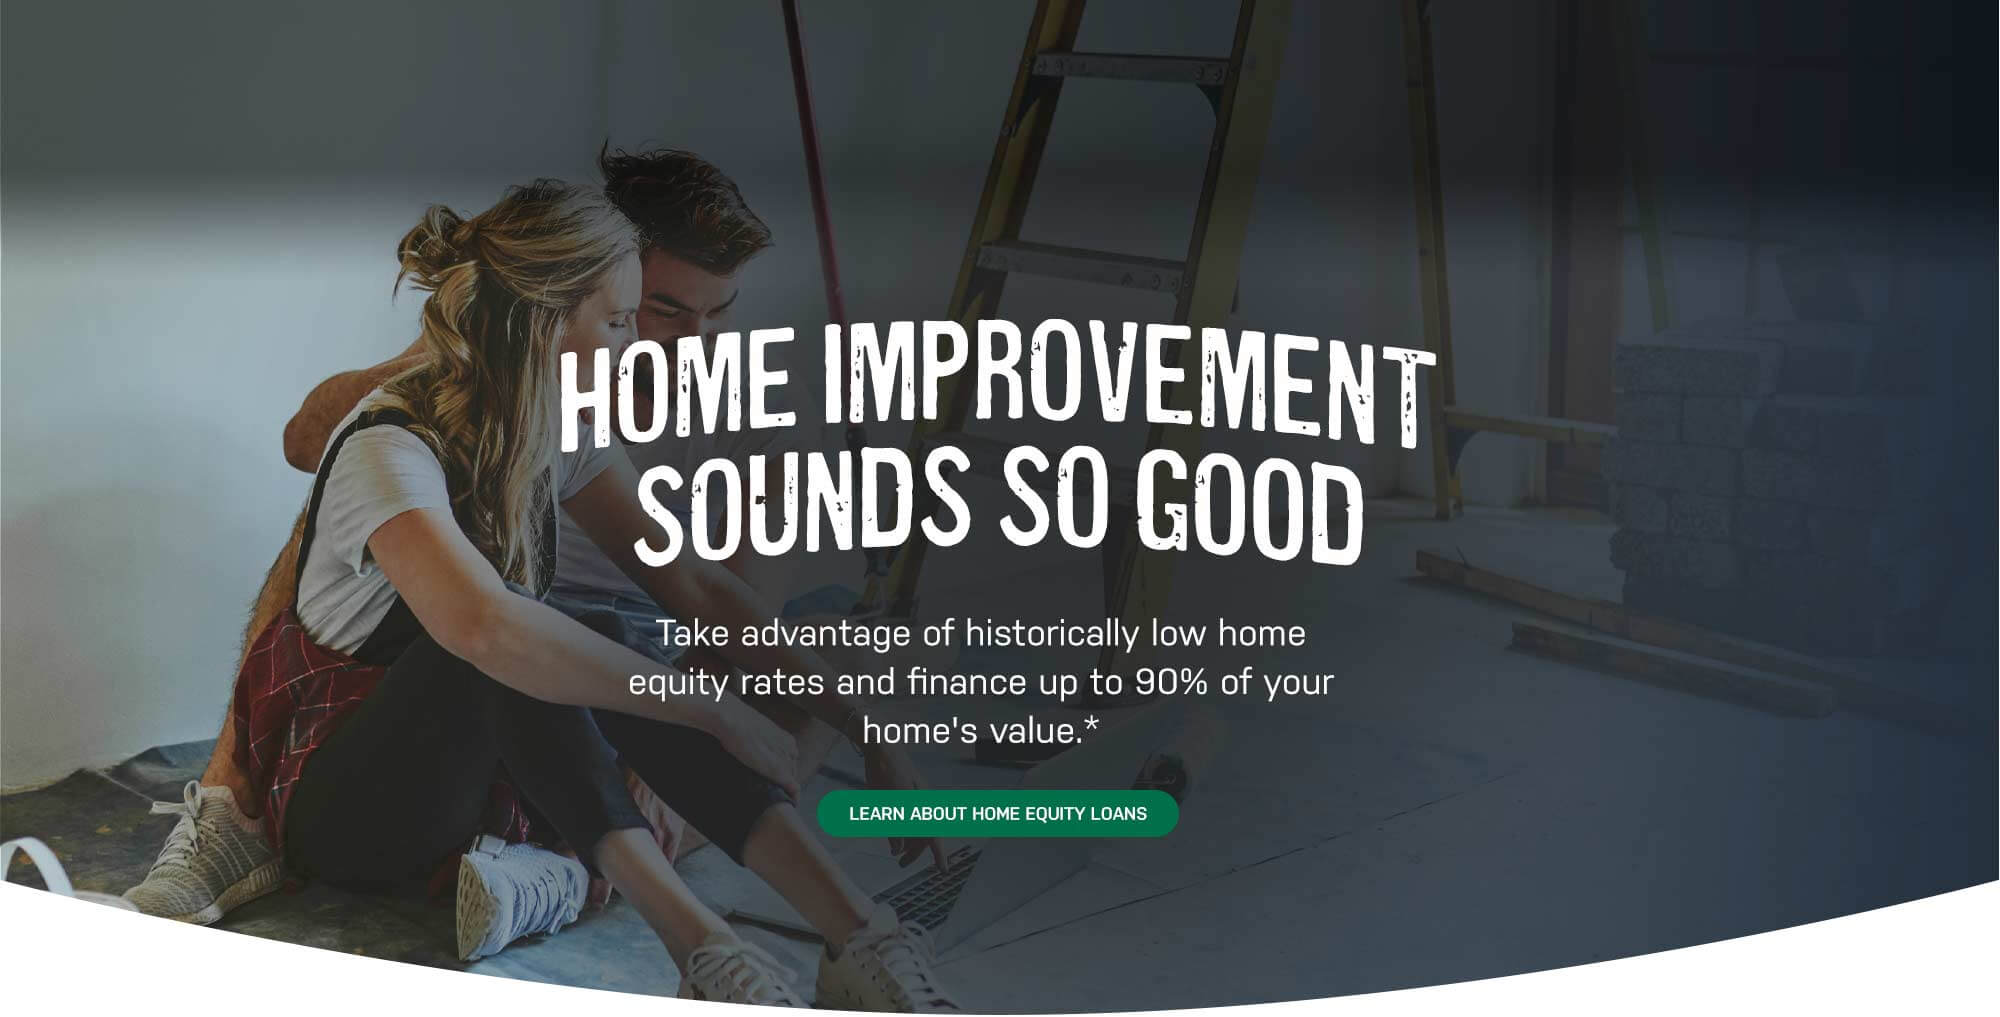 Home Improvement Sounds So Good. Take adavantage of historically low home equity rates and finance up to 90% of your home's value. Learn About Home Equity Loans